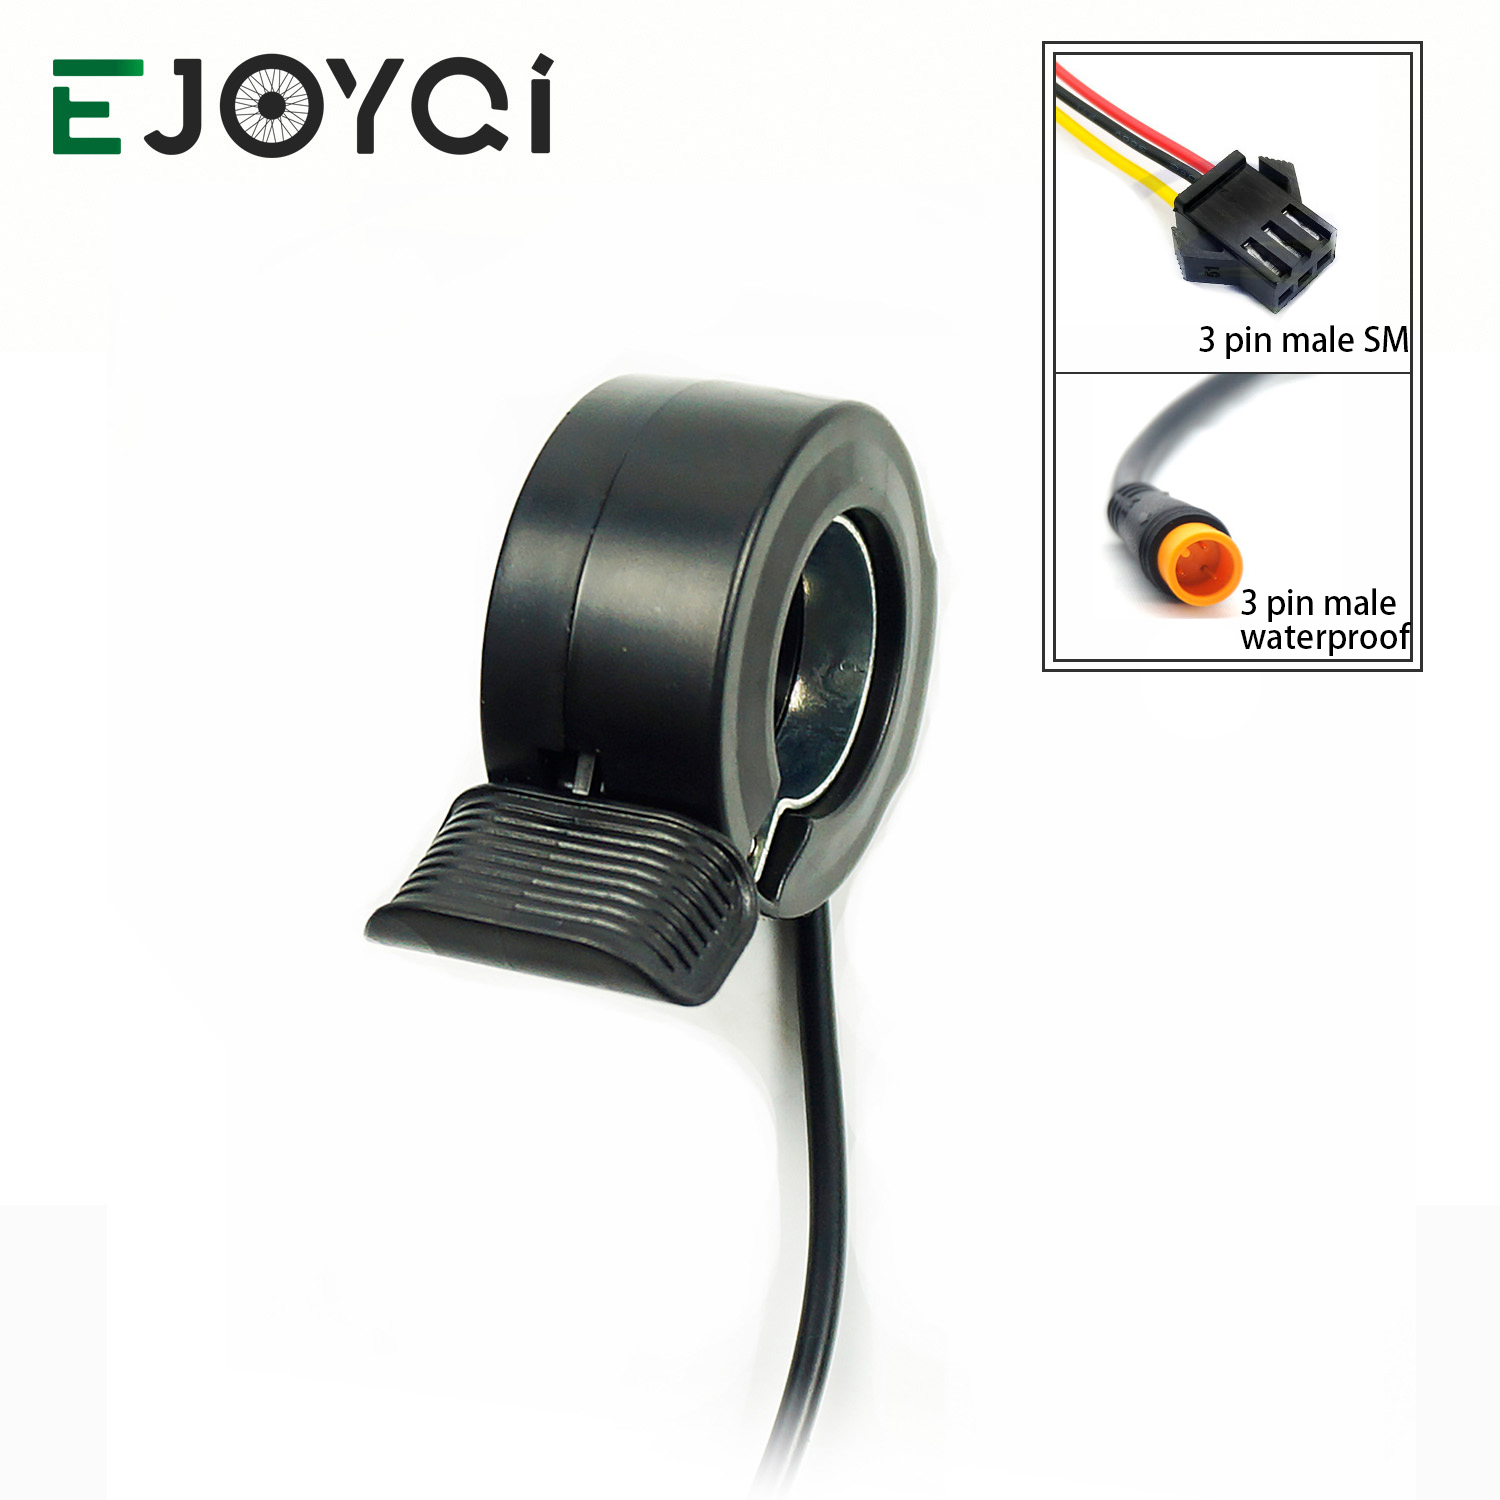 EJOYQI Wuxing E-bike 130X Thumb Throttle 24V 36V 48V 60V 72V SM Waterproof Connector Electric Bicycle Accessories